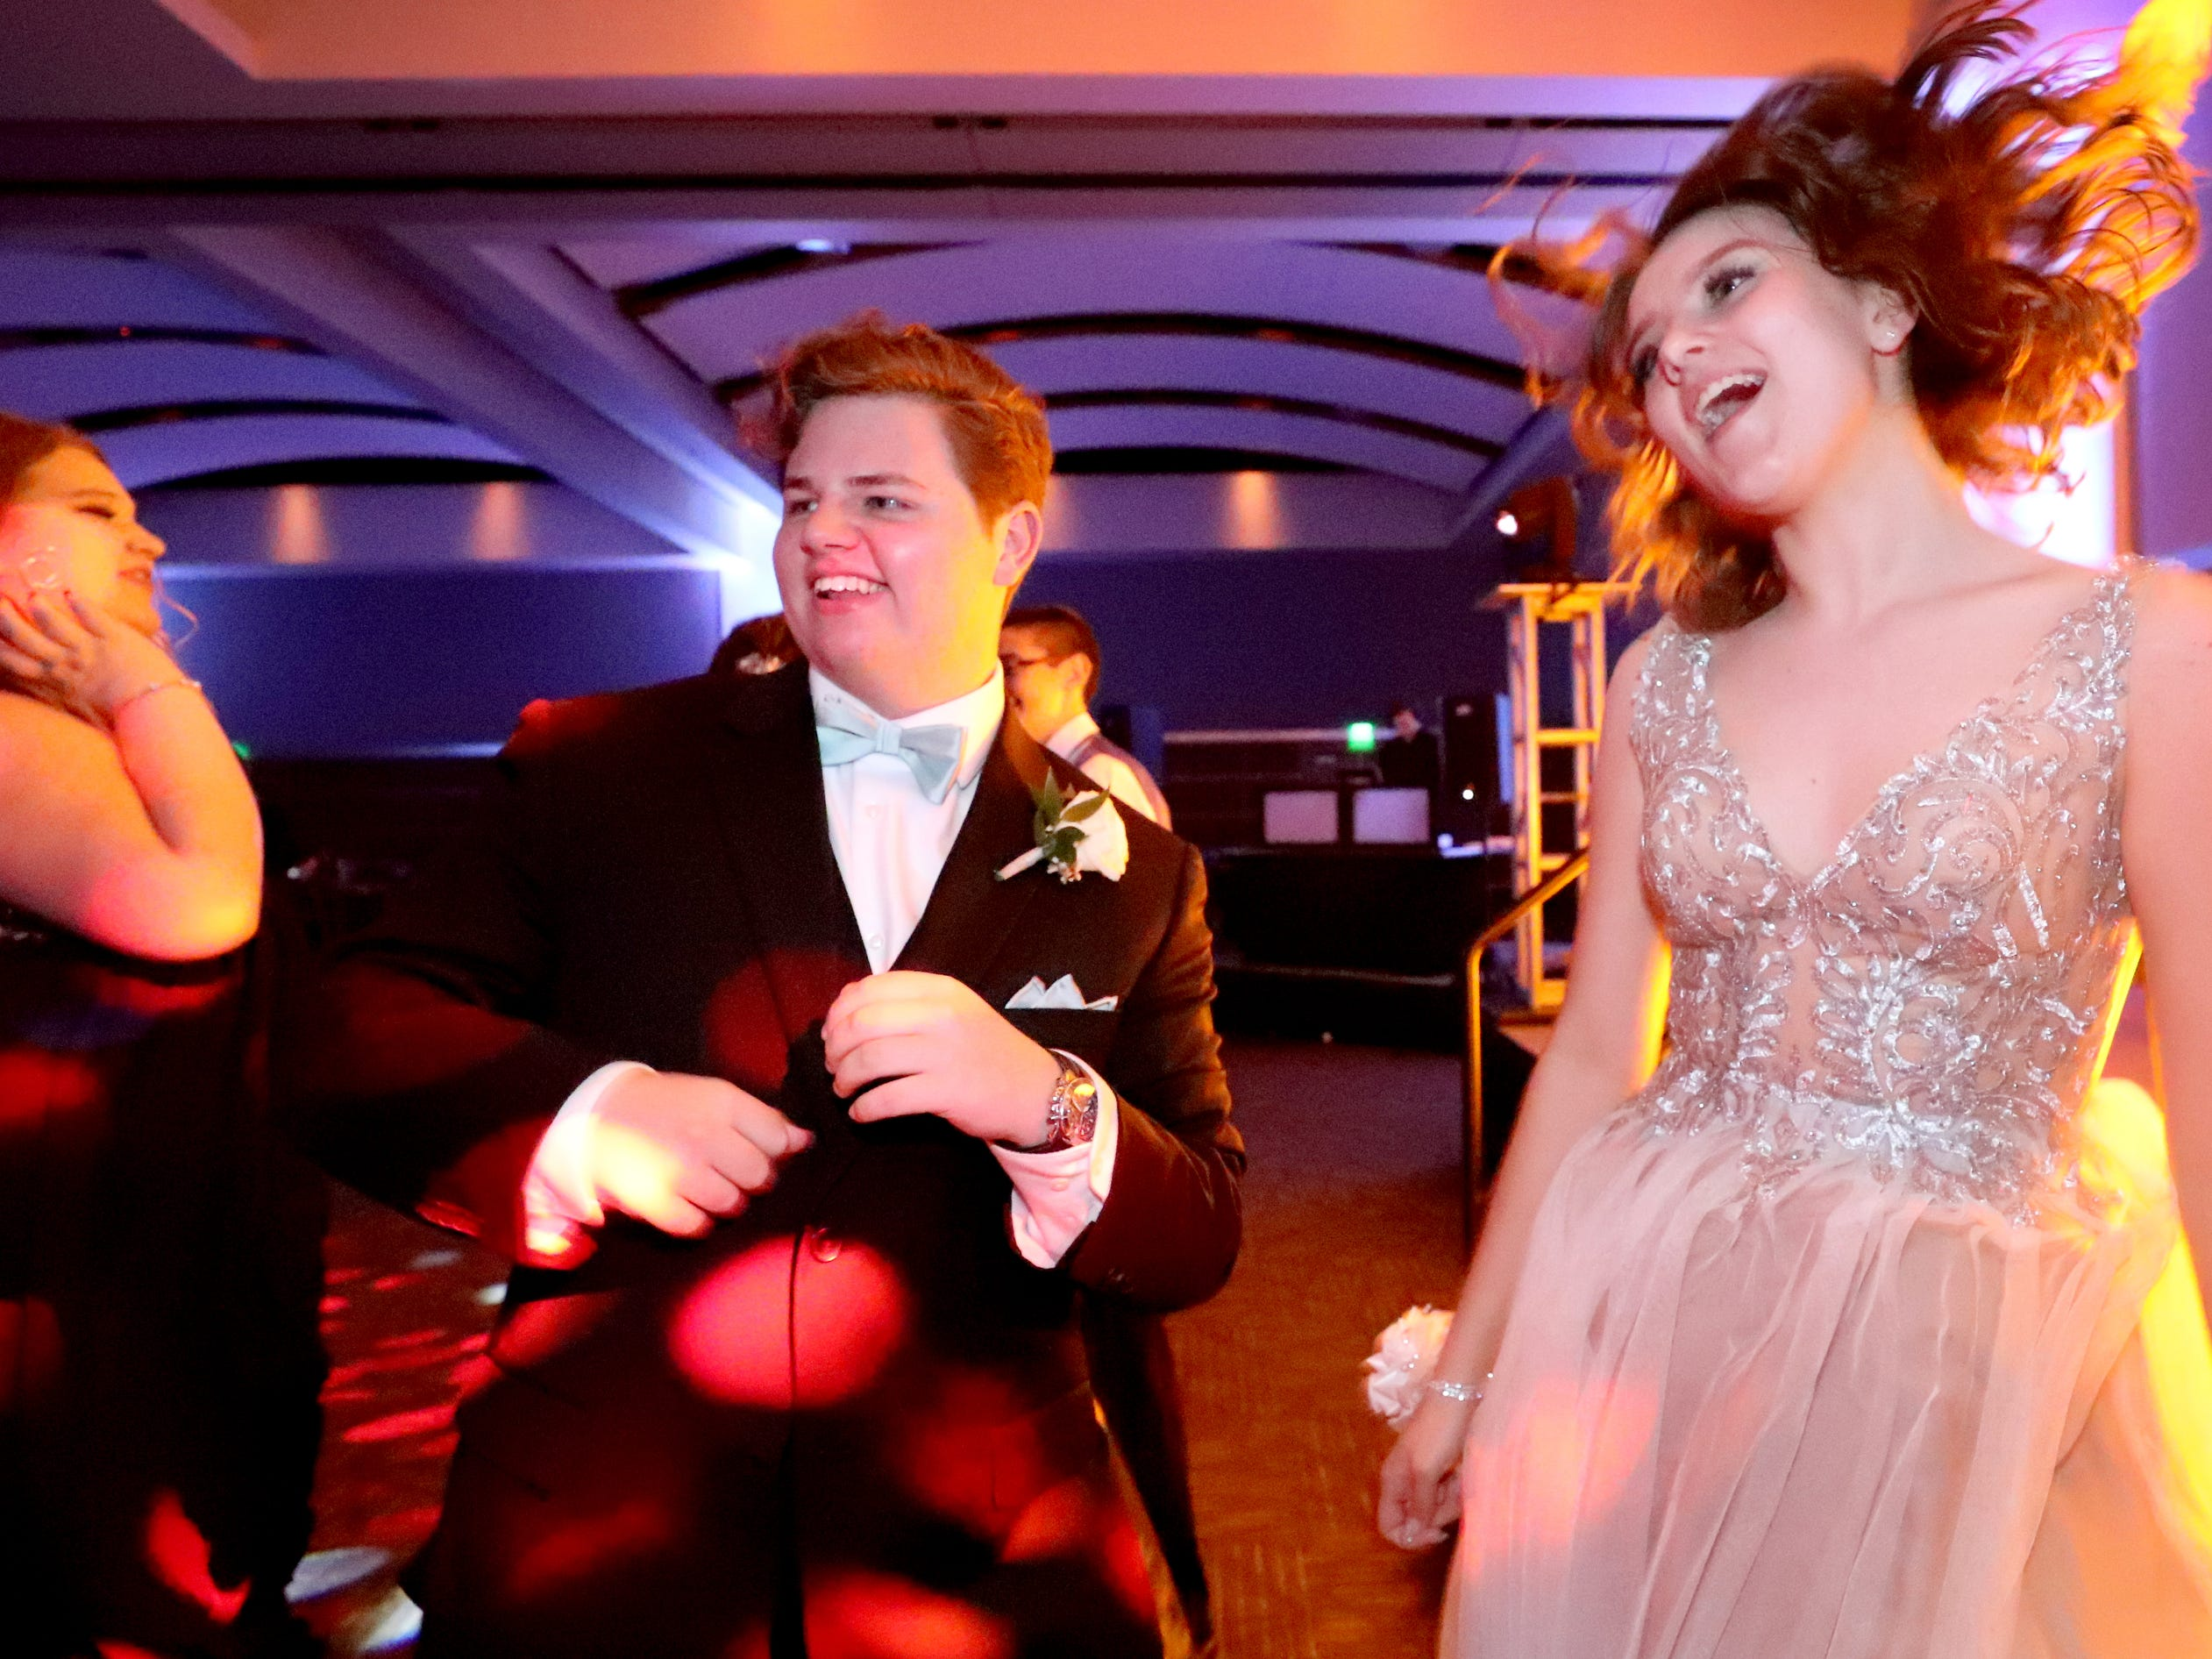 Aaron Music, left and Jessica McKnight, right jump and dance at Blackman's prom on Friday April 12, 2019, at MTSU.